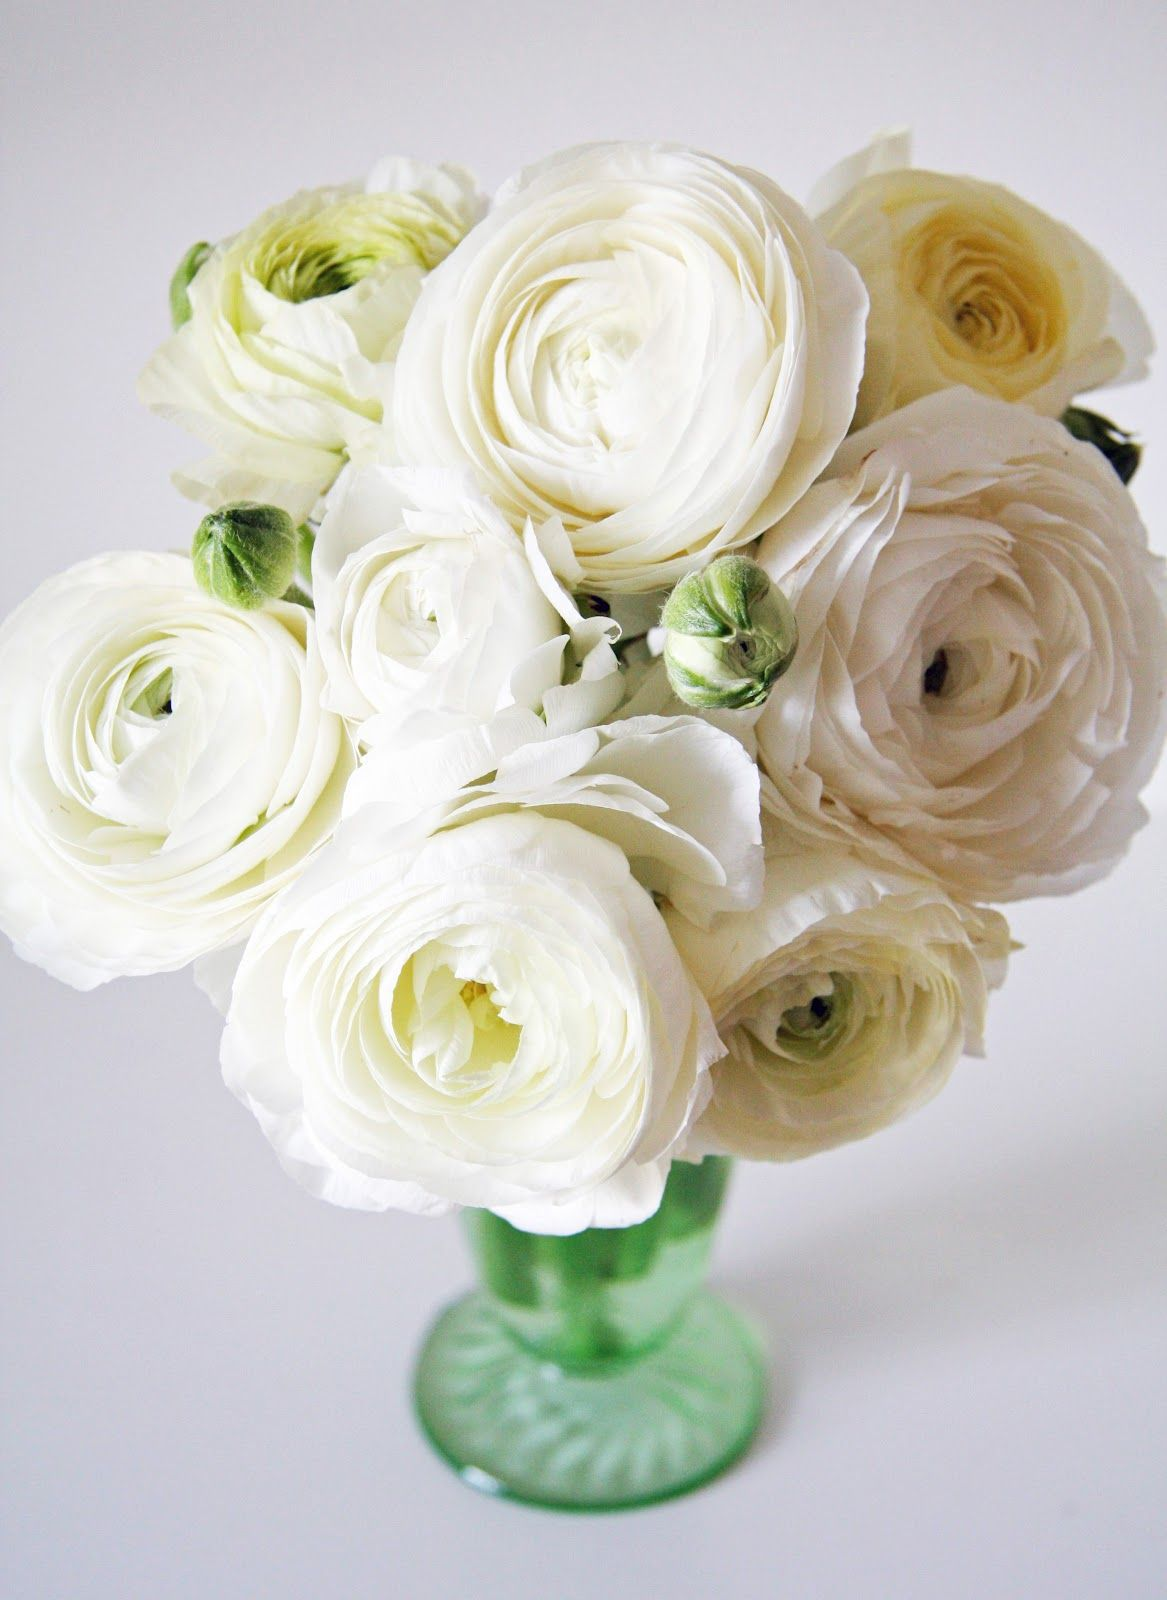 A Country Farmhouse White Ranunculus Maybe Pinterest White